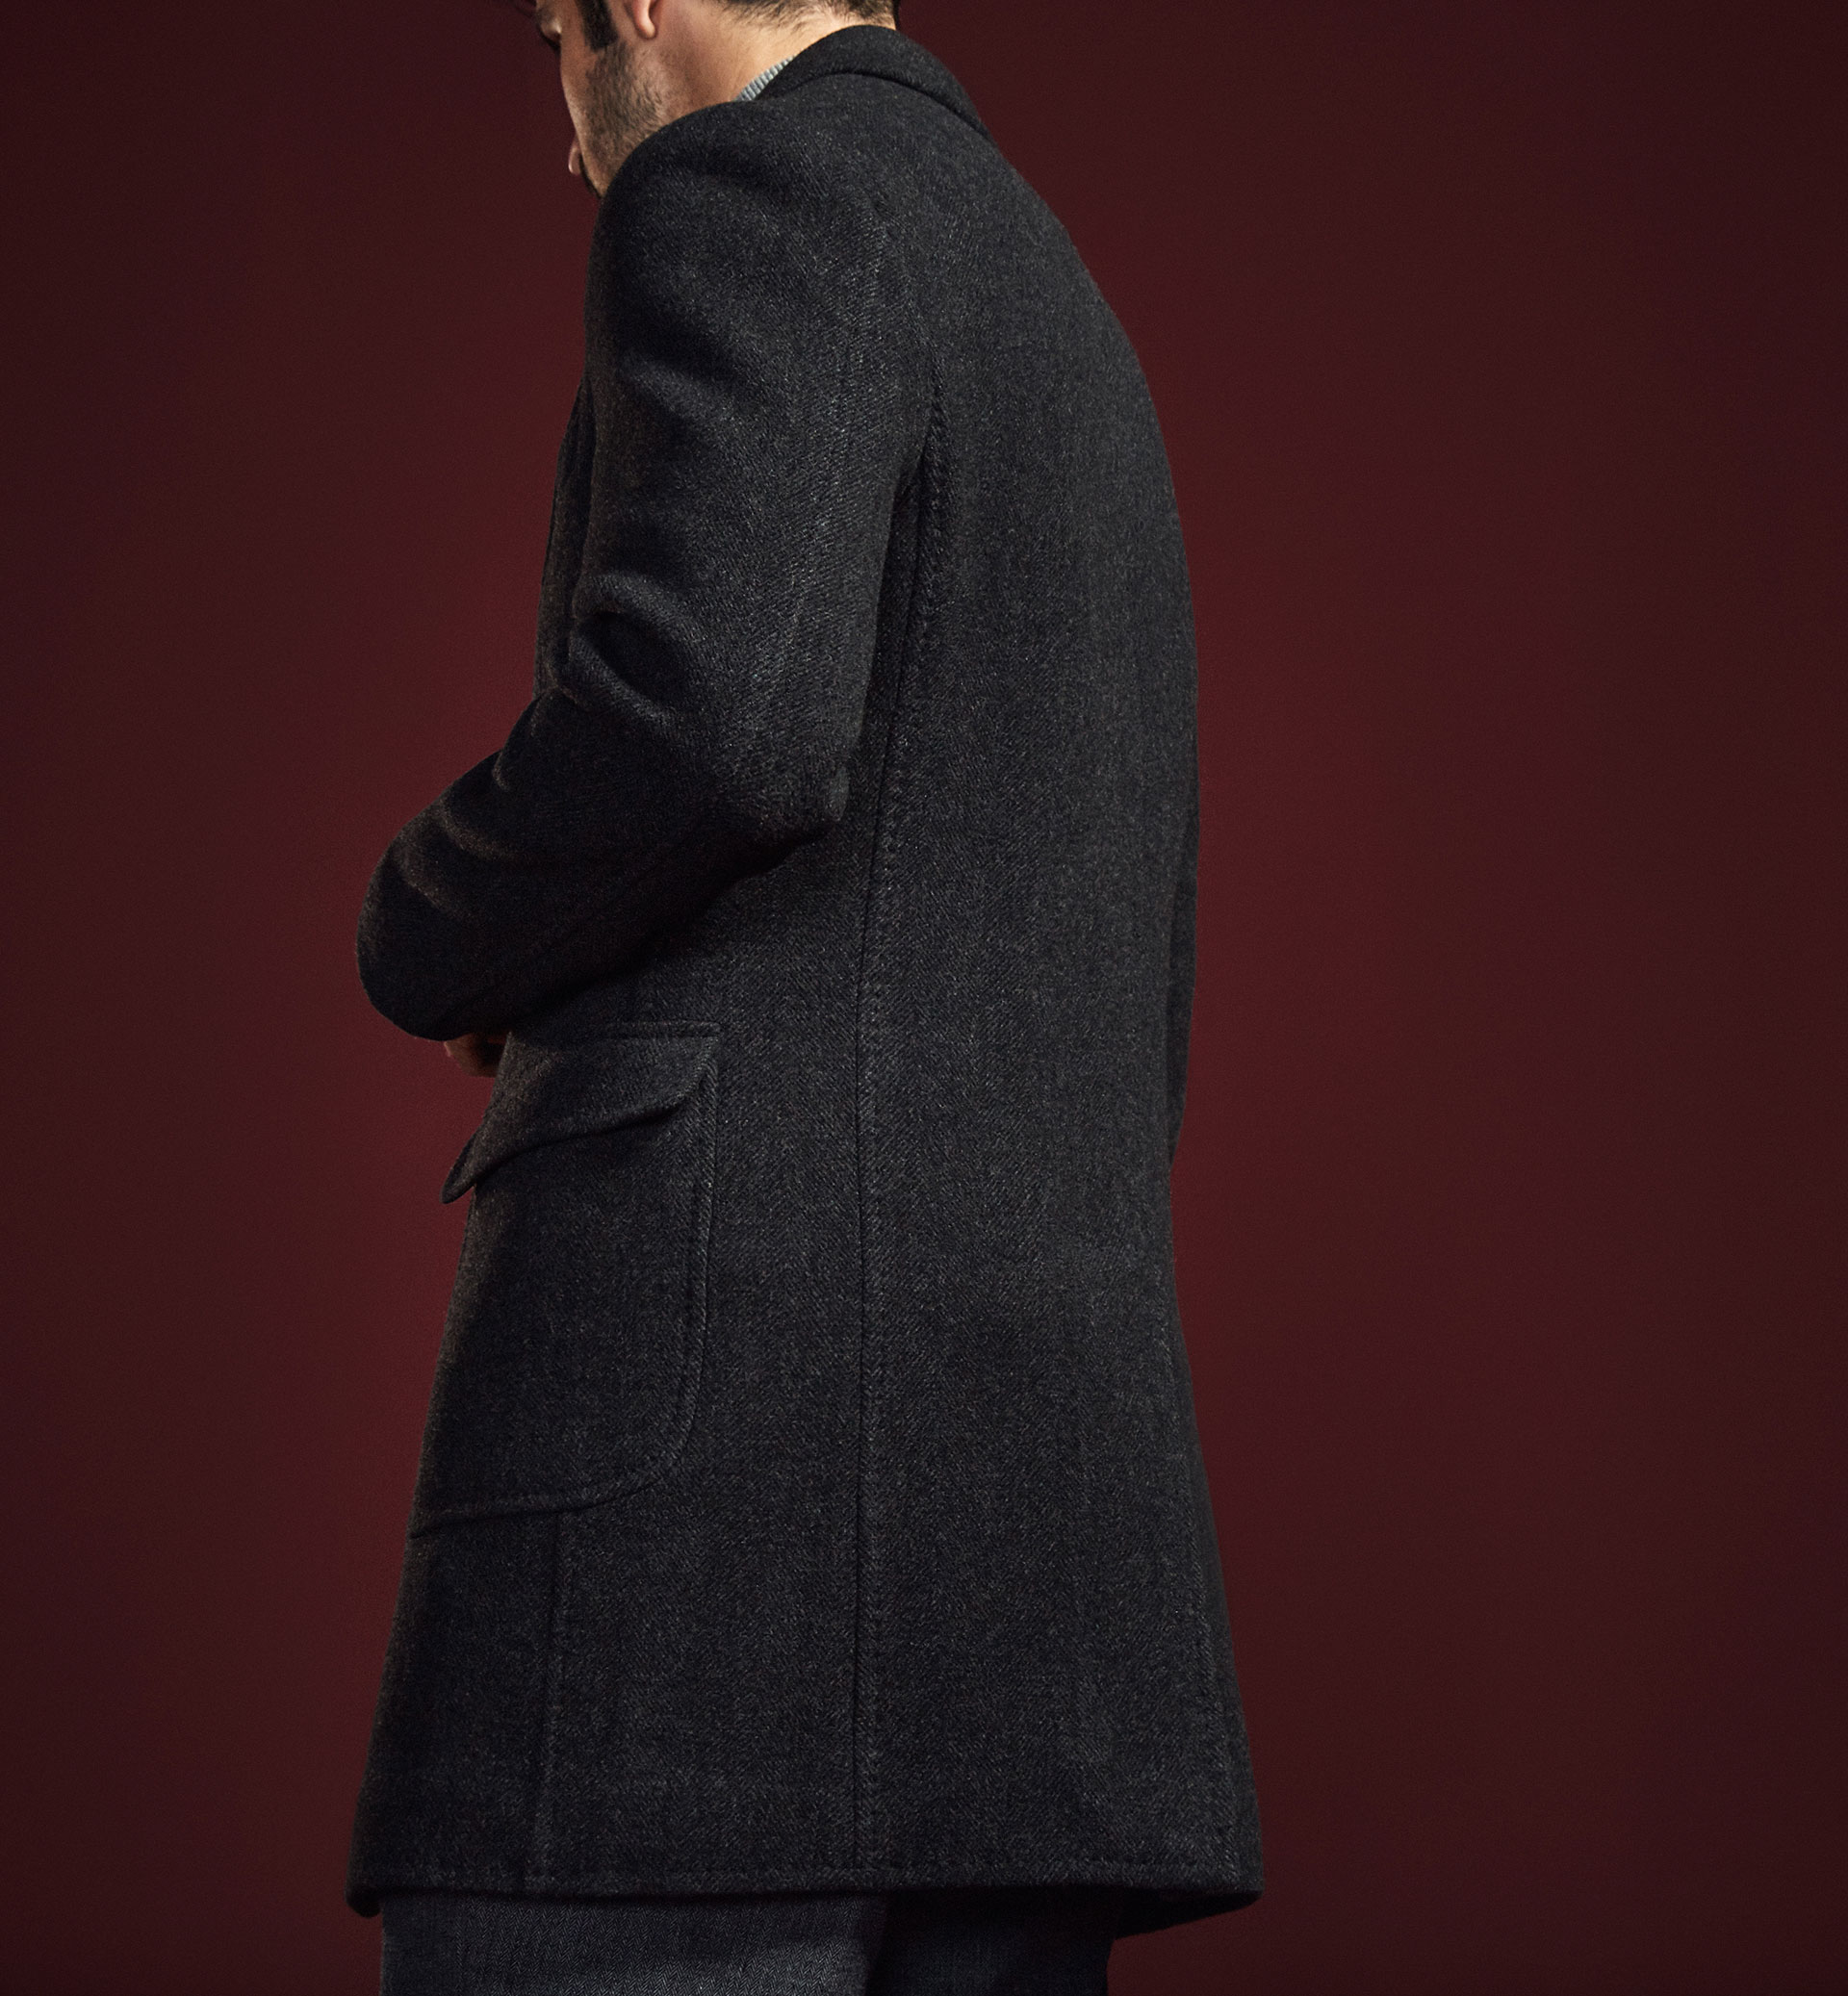 LIMITED EDITION CASHMERE/WOOL COAT